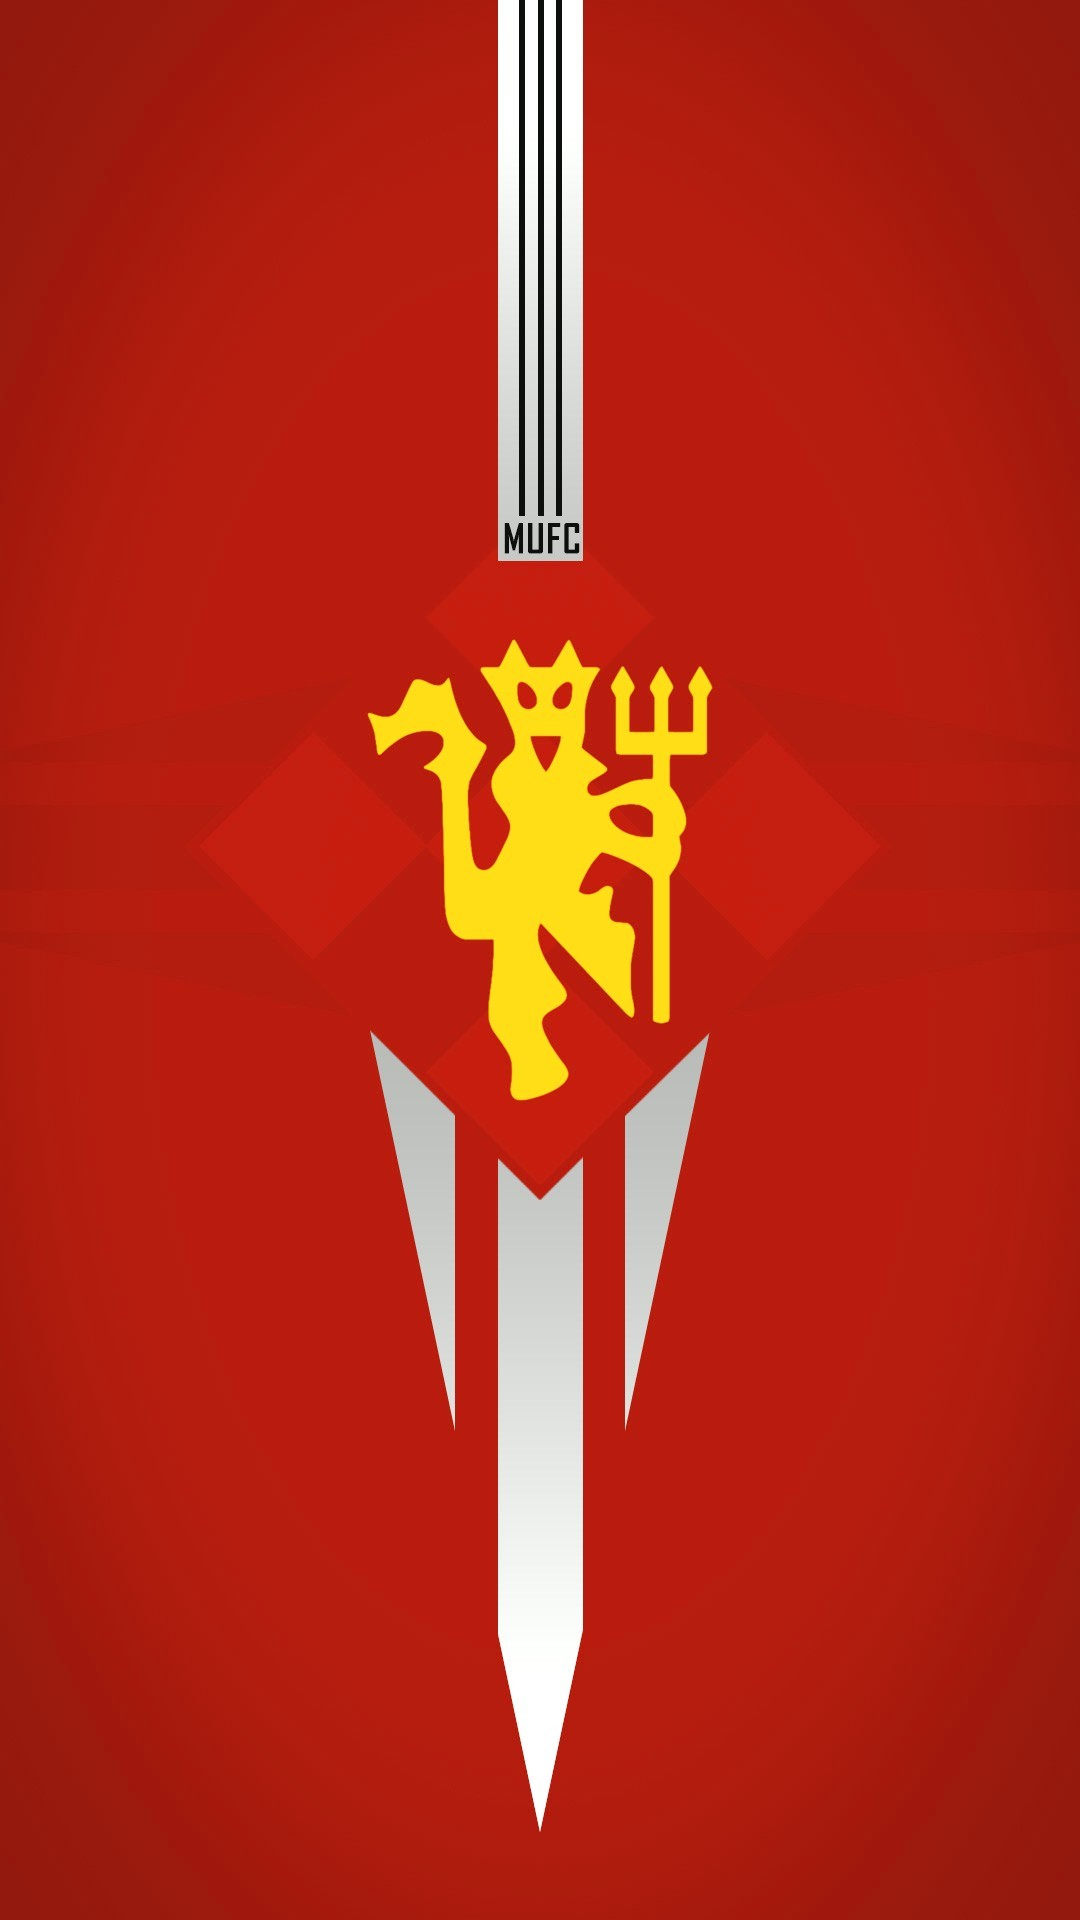 1080x1920 Manchester United Red Devils iPhone Wallpaper